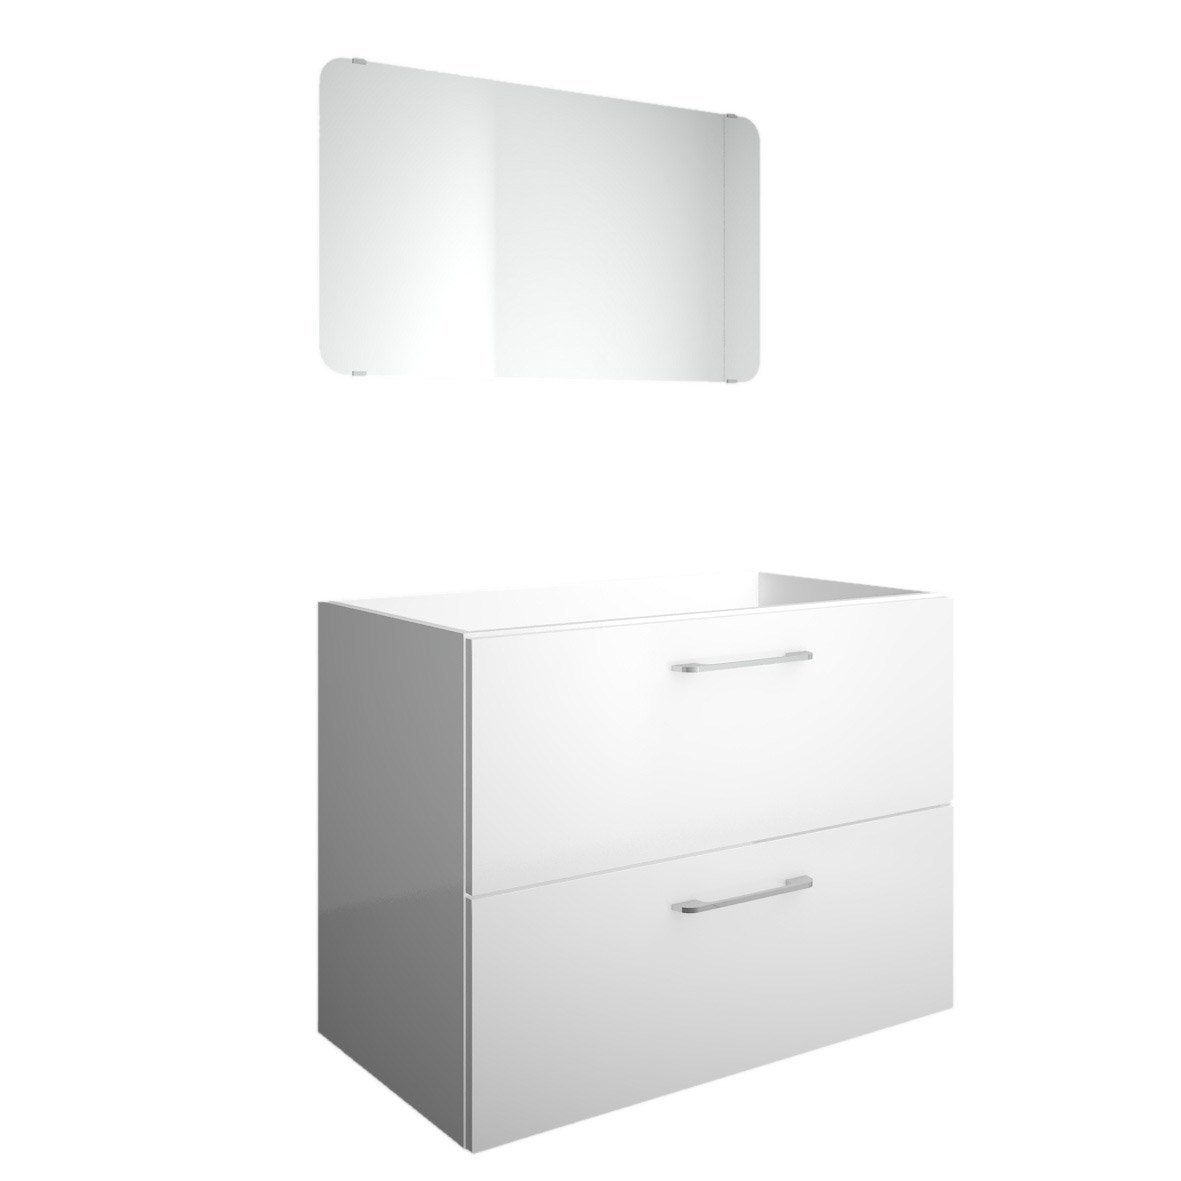 Meuble sous vasque 2 tiroirs 80 cm happy blanc blanc n 0 for Meuble sous vasque leroy merlin